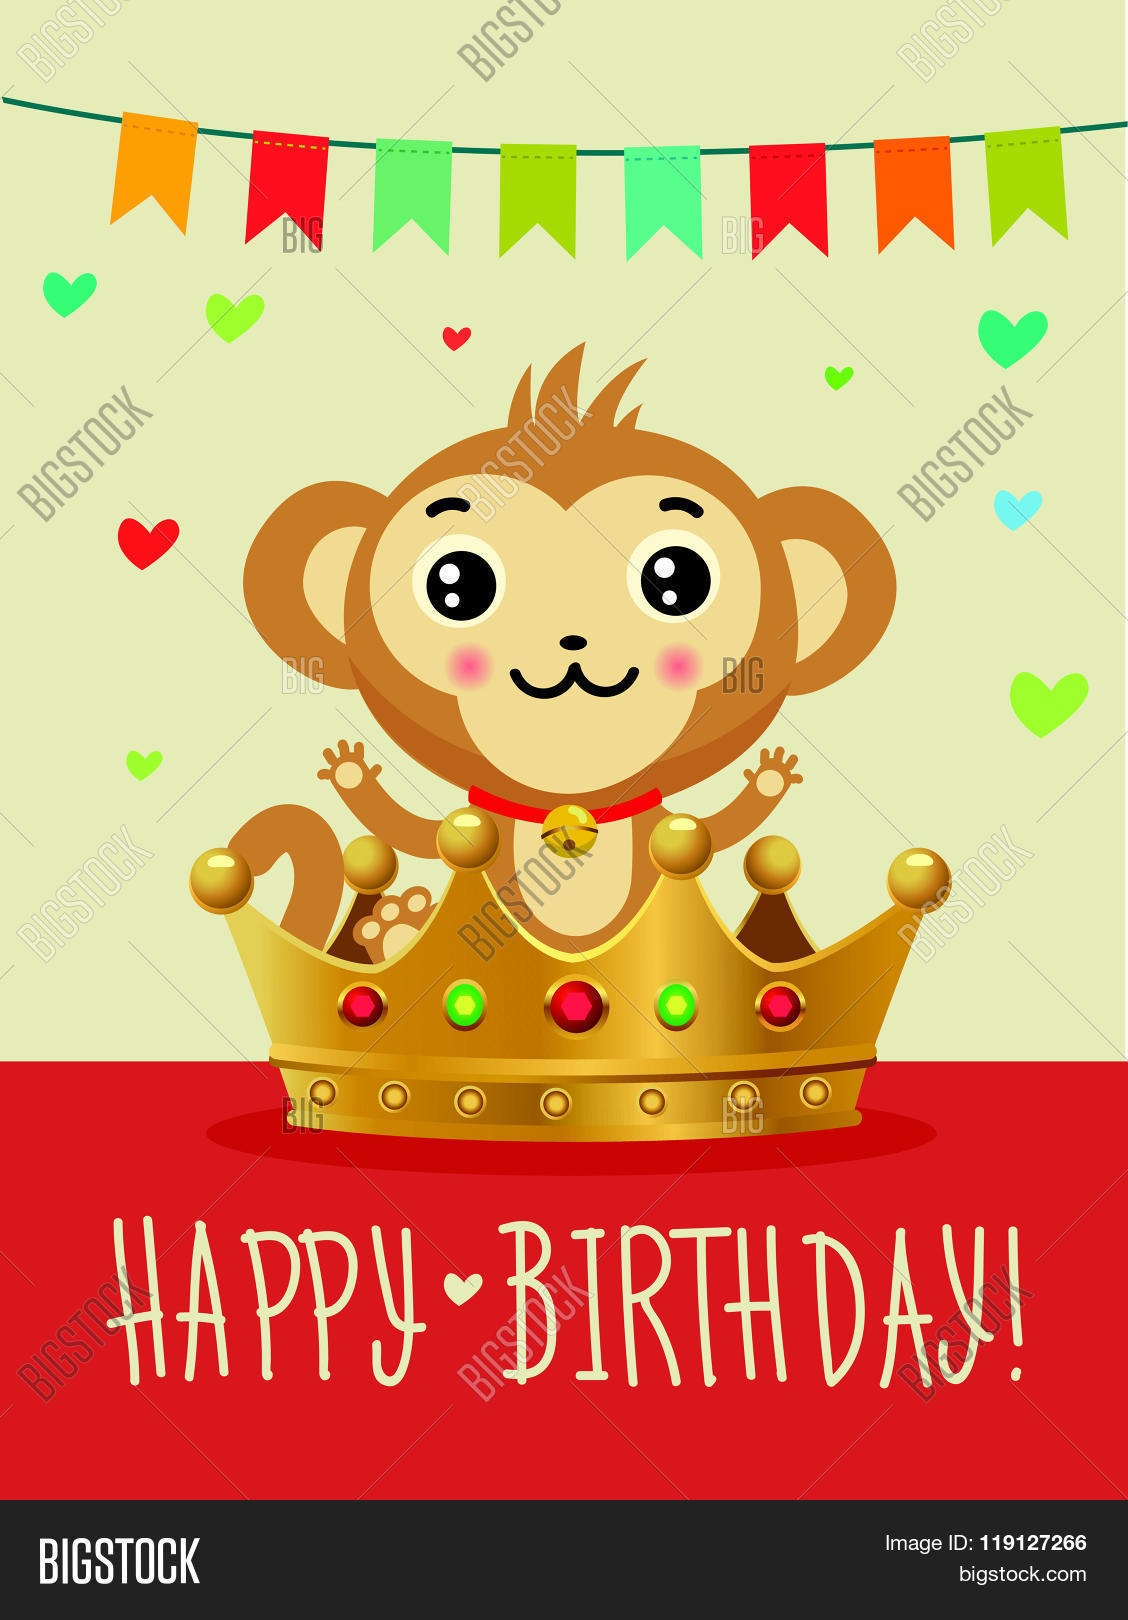 birthday wishes for friend images free download ; 119127266